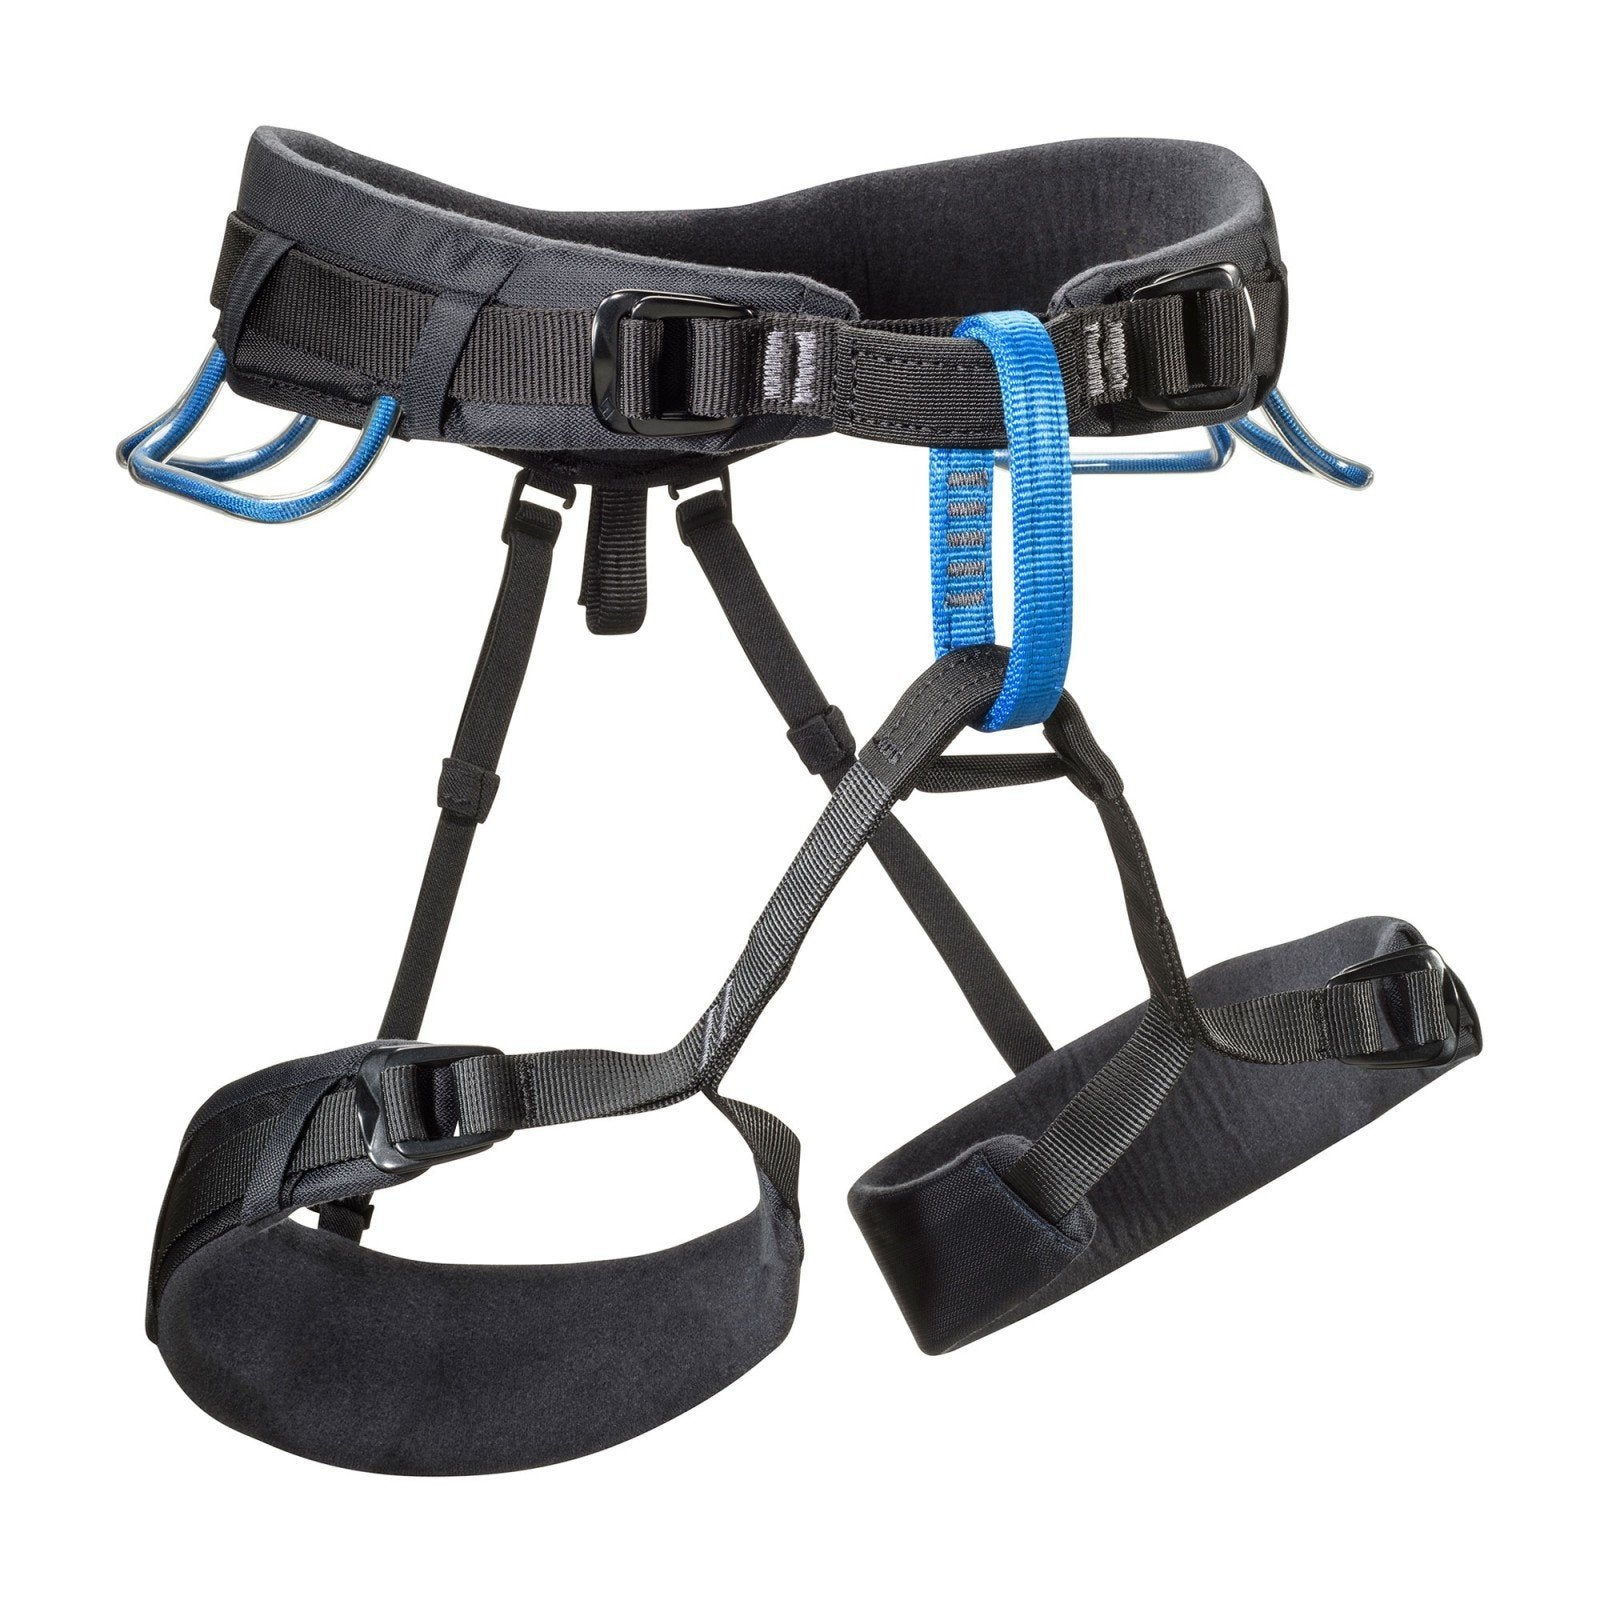 Black Diamond Momentum DS Harness, in black and blue colours